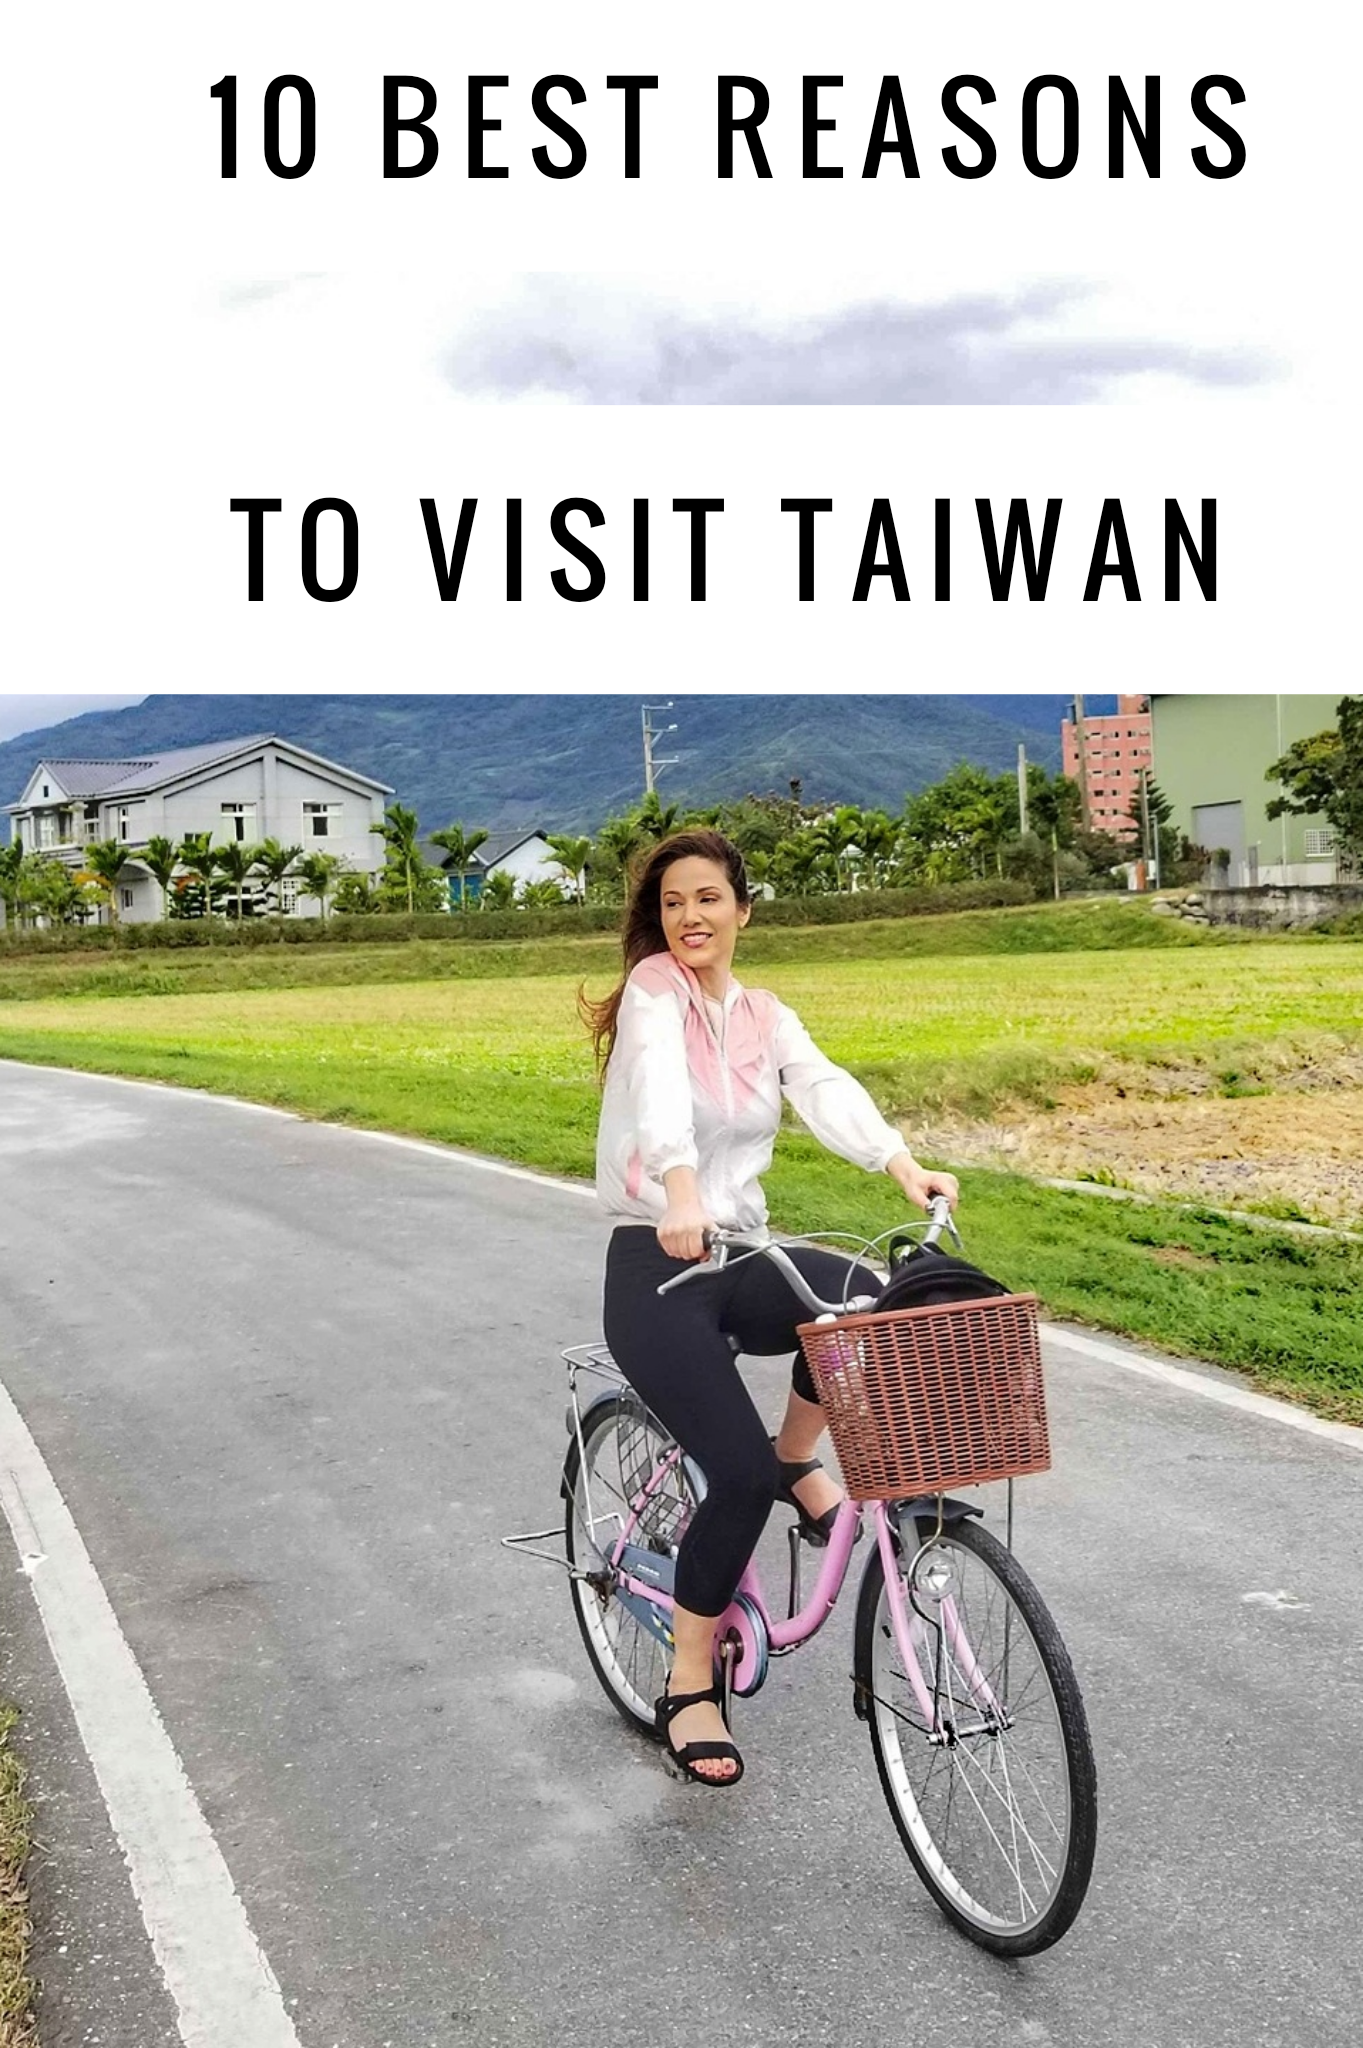 10 Reasons to Visit Taiwan